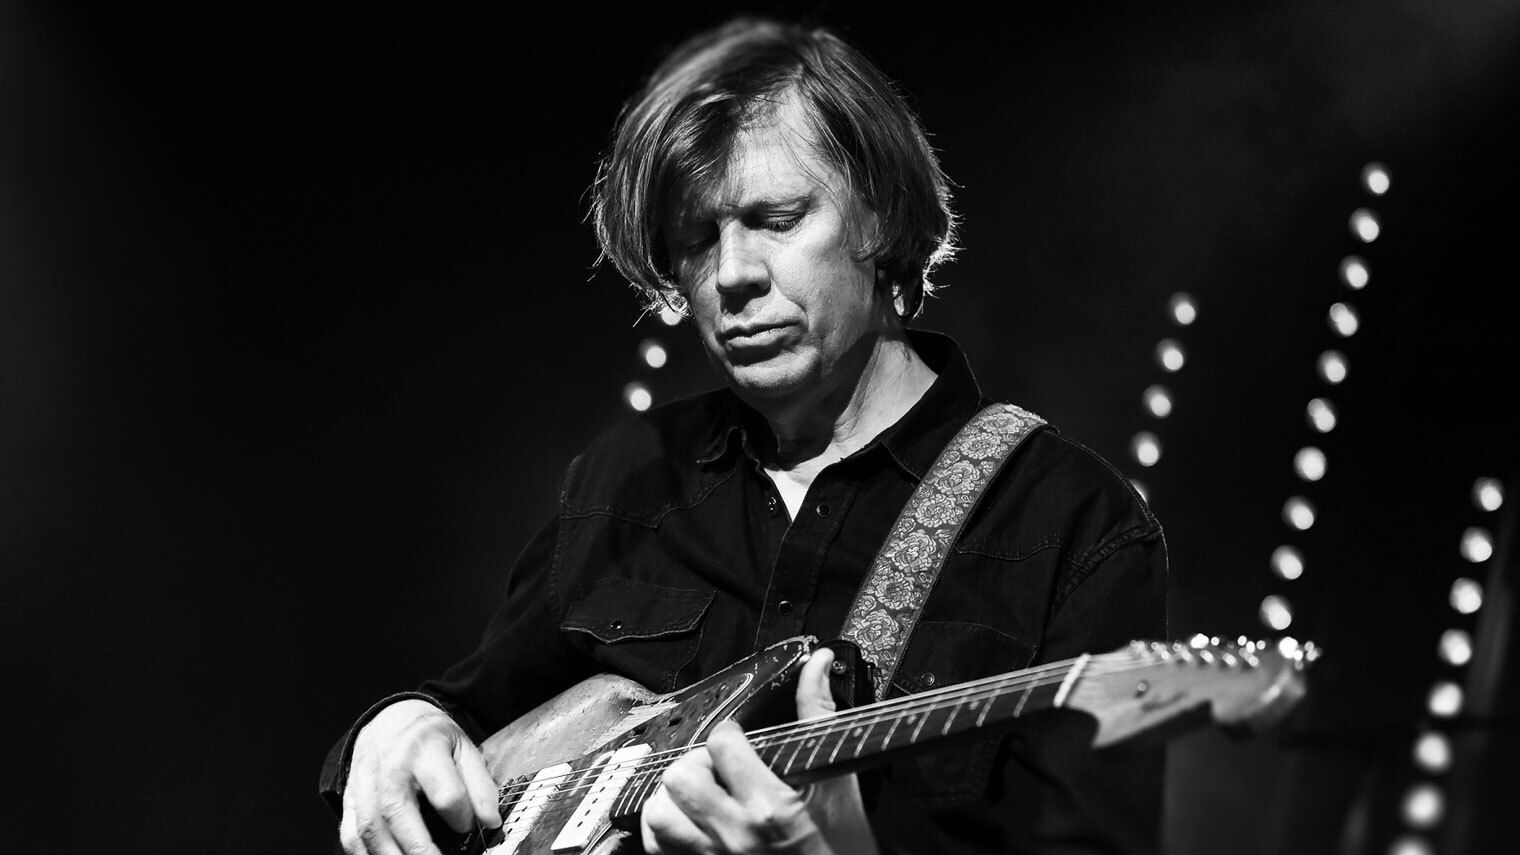 Thurston Moore, seated, playing guitar.